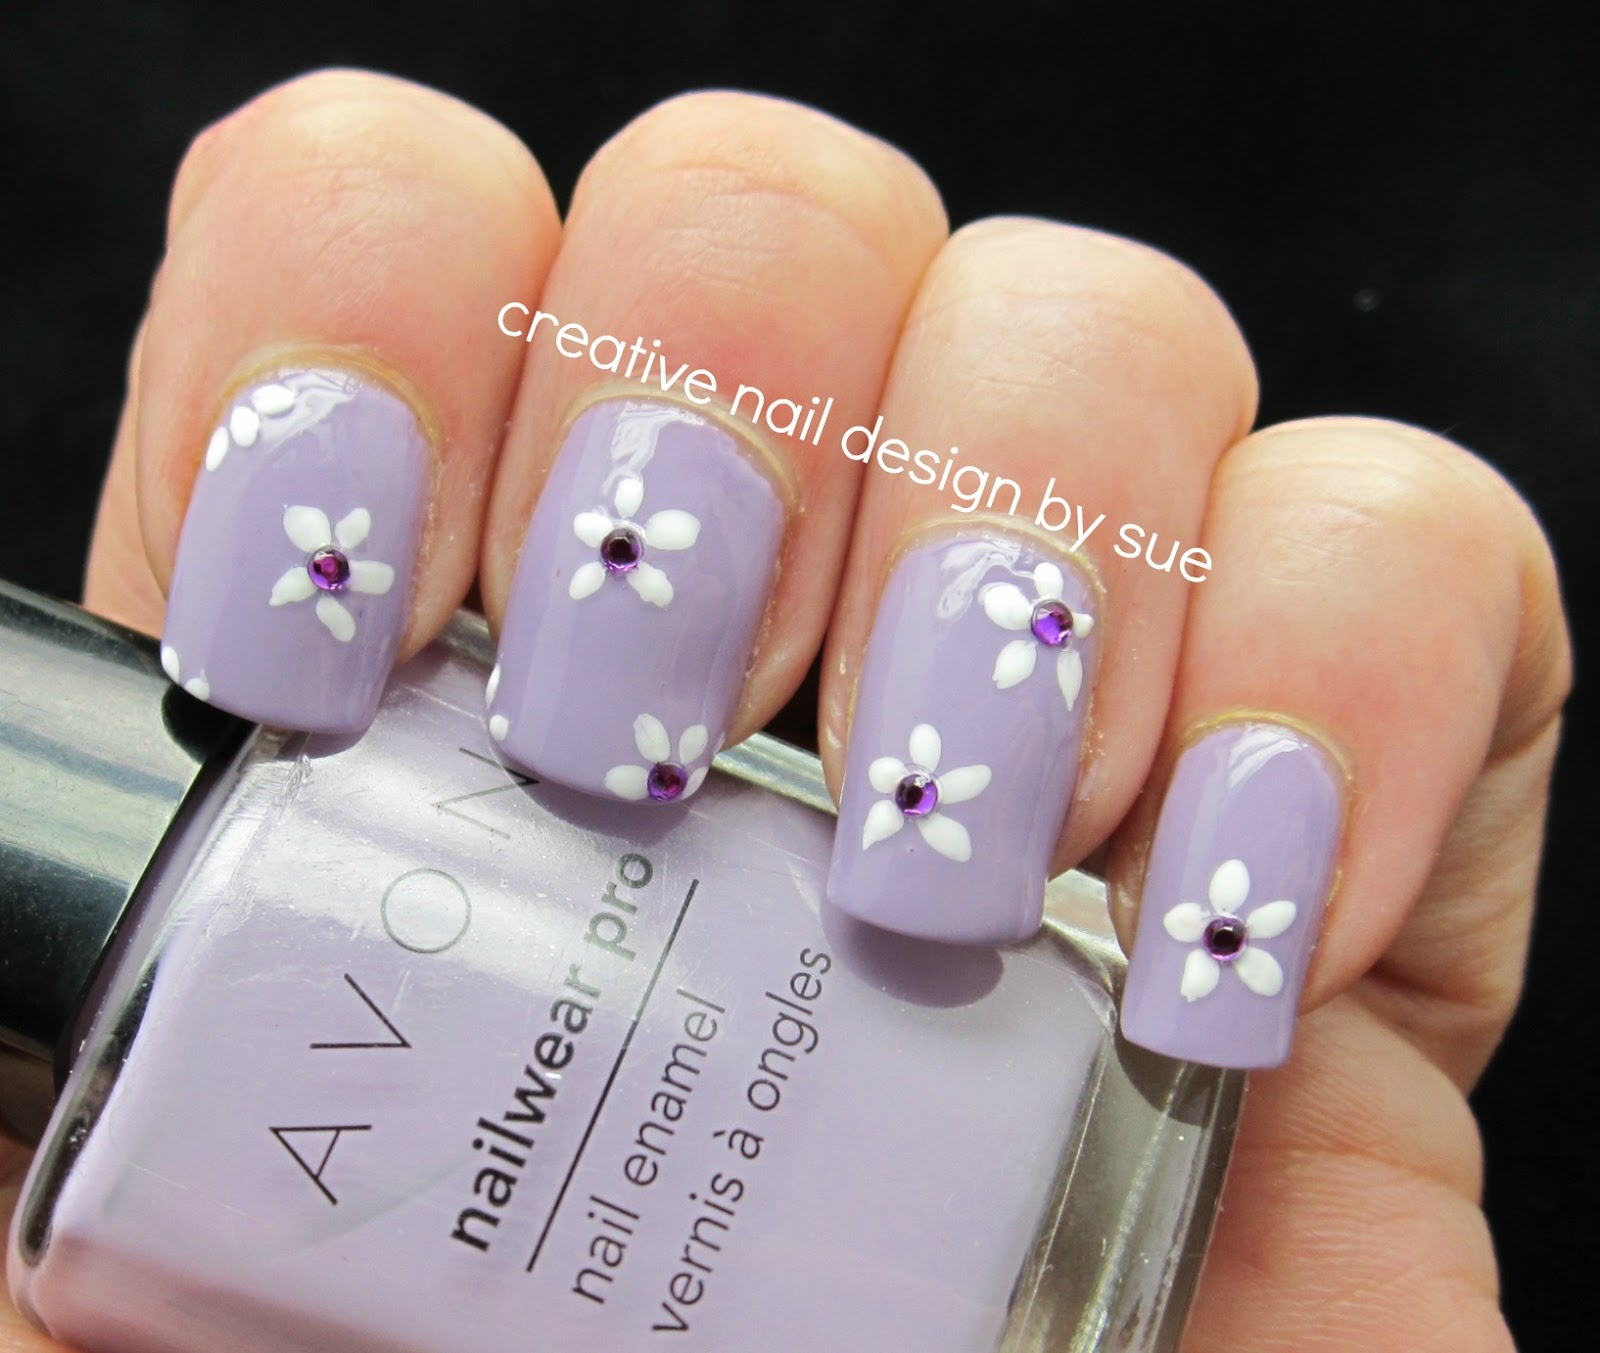 Creative nail design by sue avon luxe lavender for Avon nail decoration tool